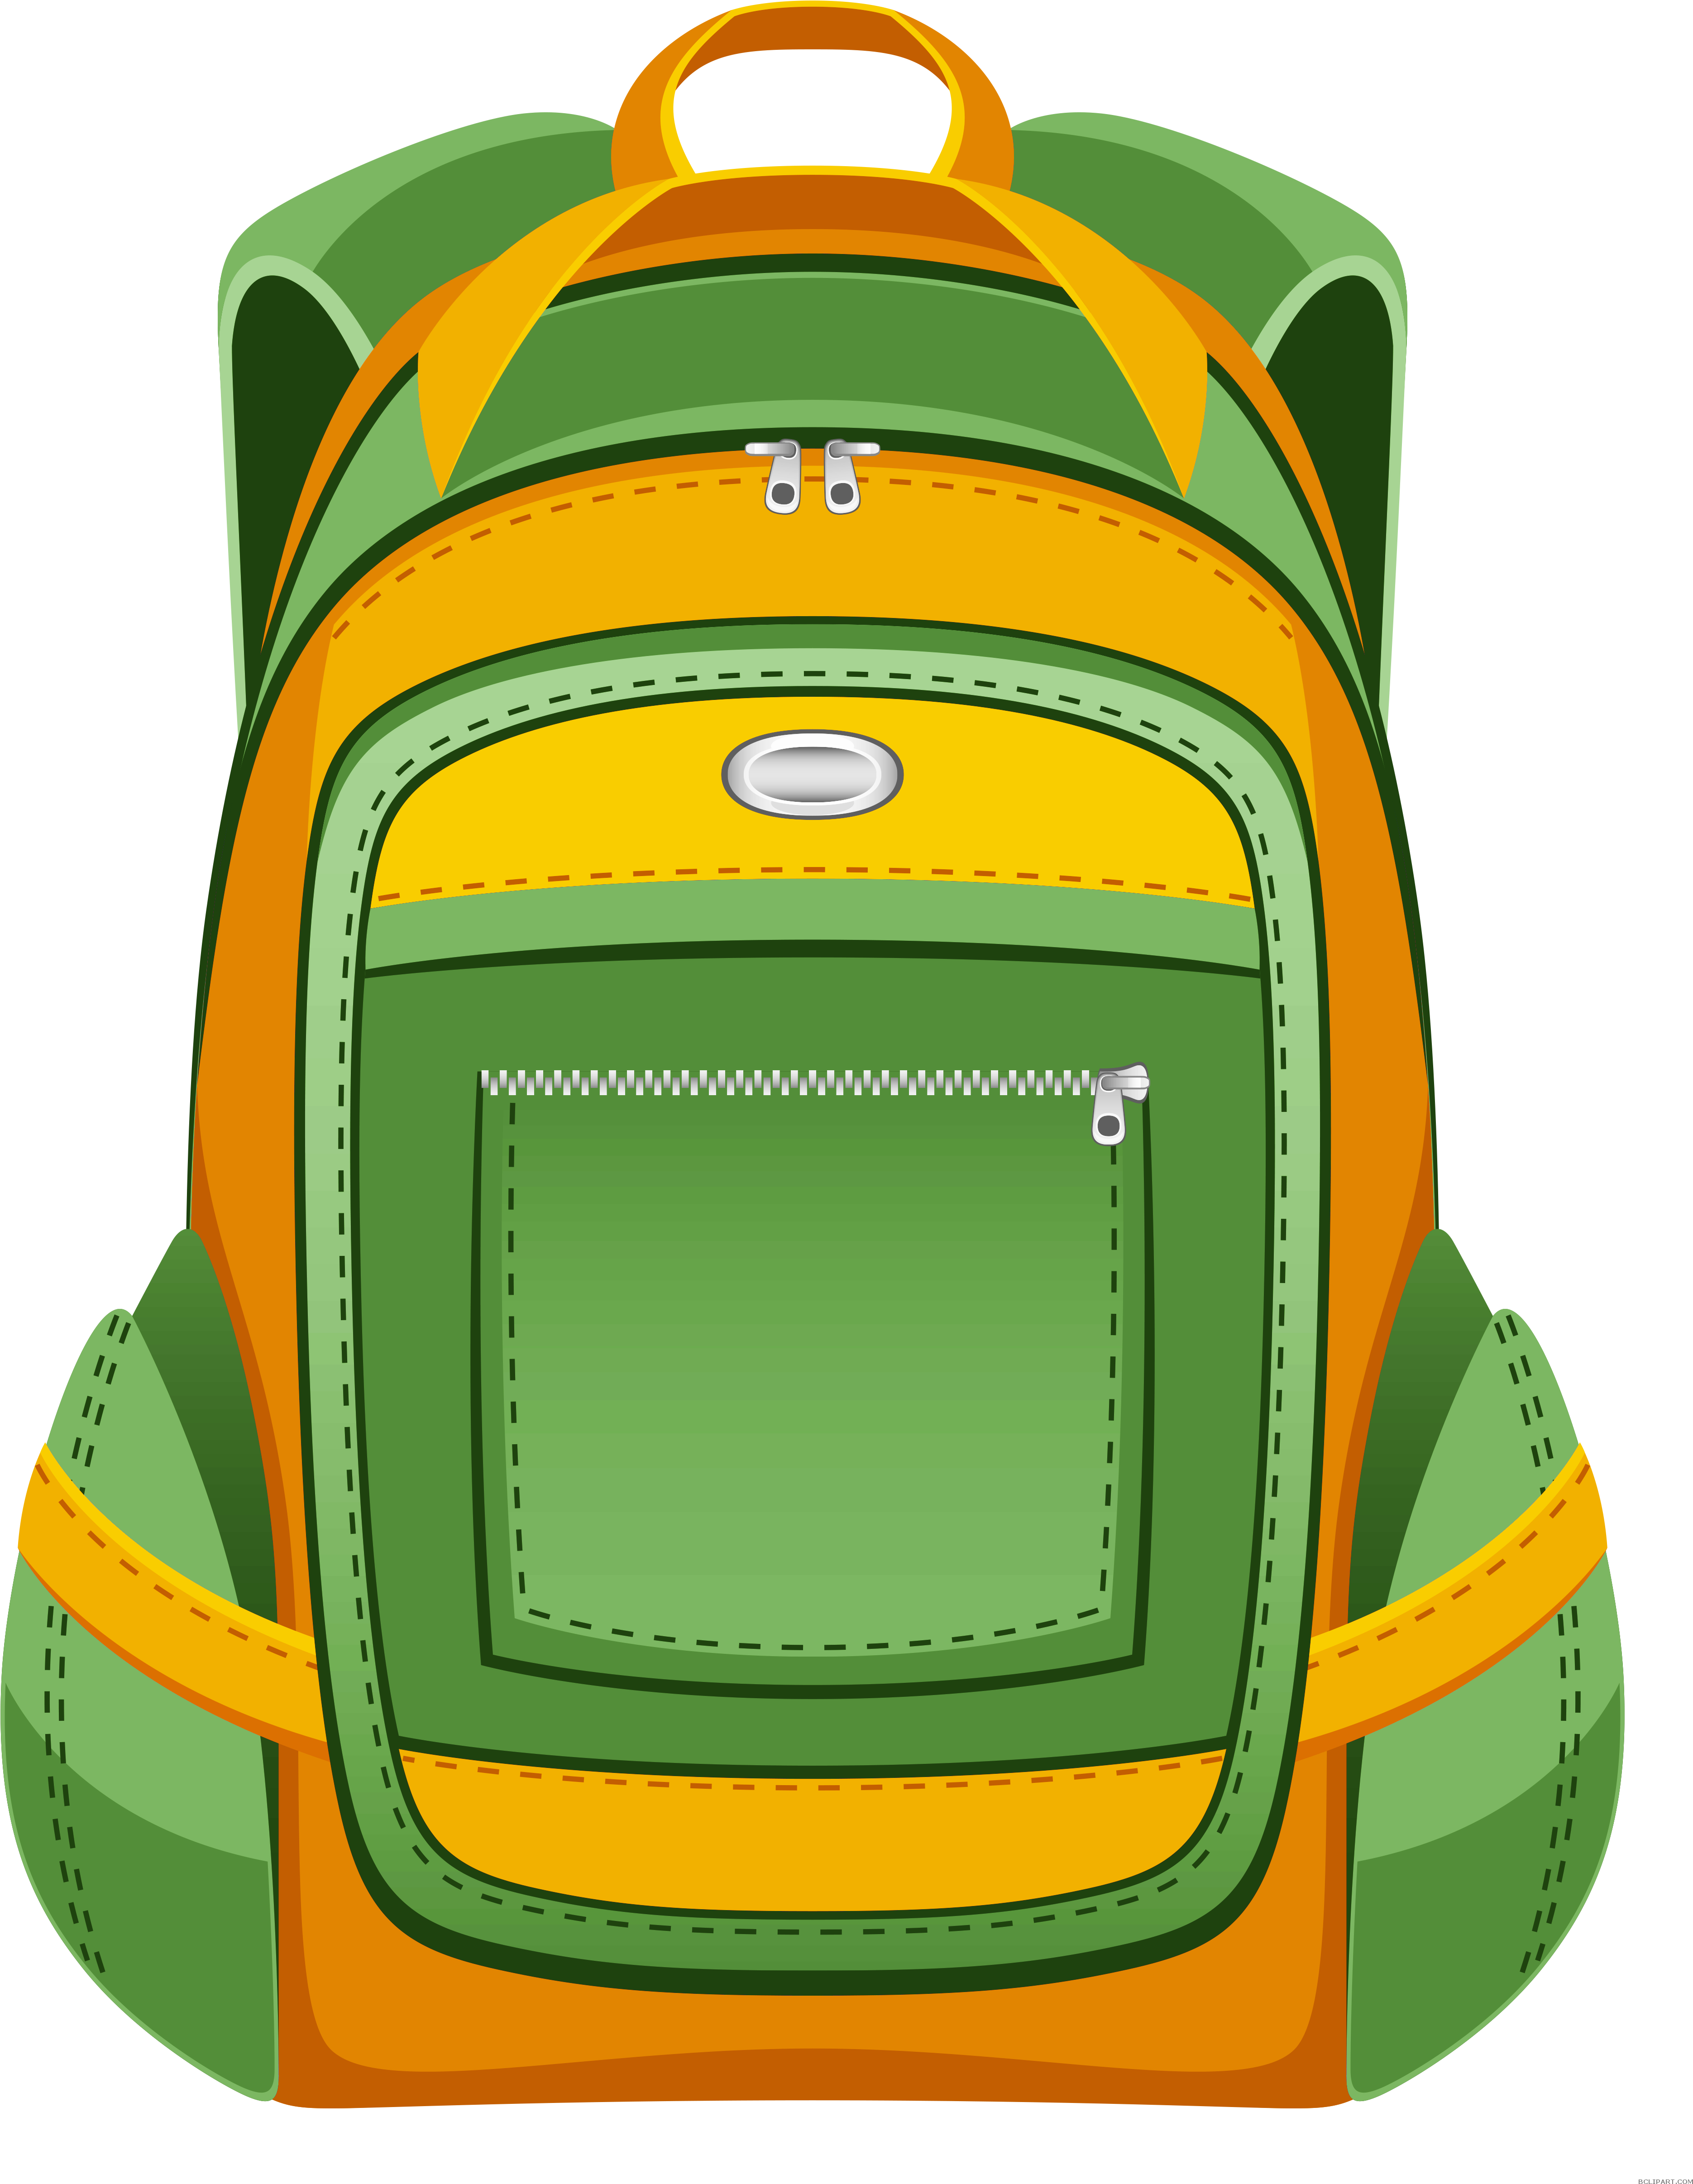 Clipart of a snack in a backpack jpg freeuse HD Backpack Clipart Png - School Bag Png Vector , Free Unlimited ... jpg freeuse